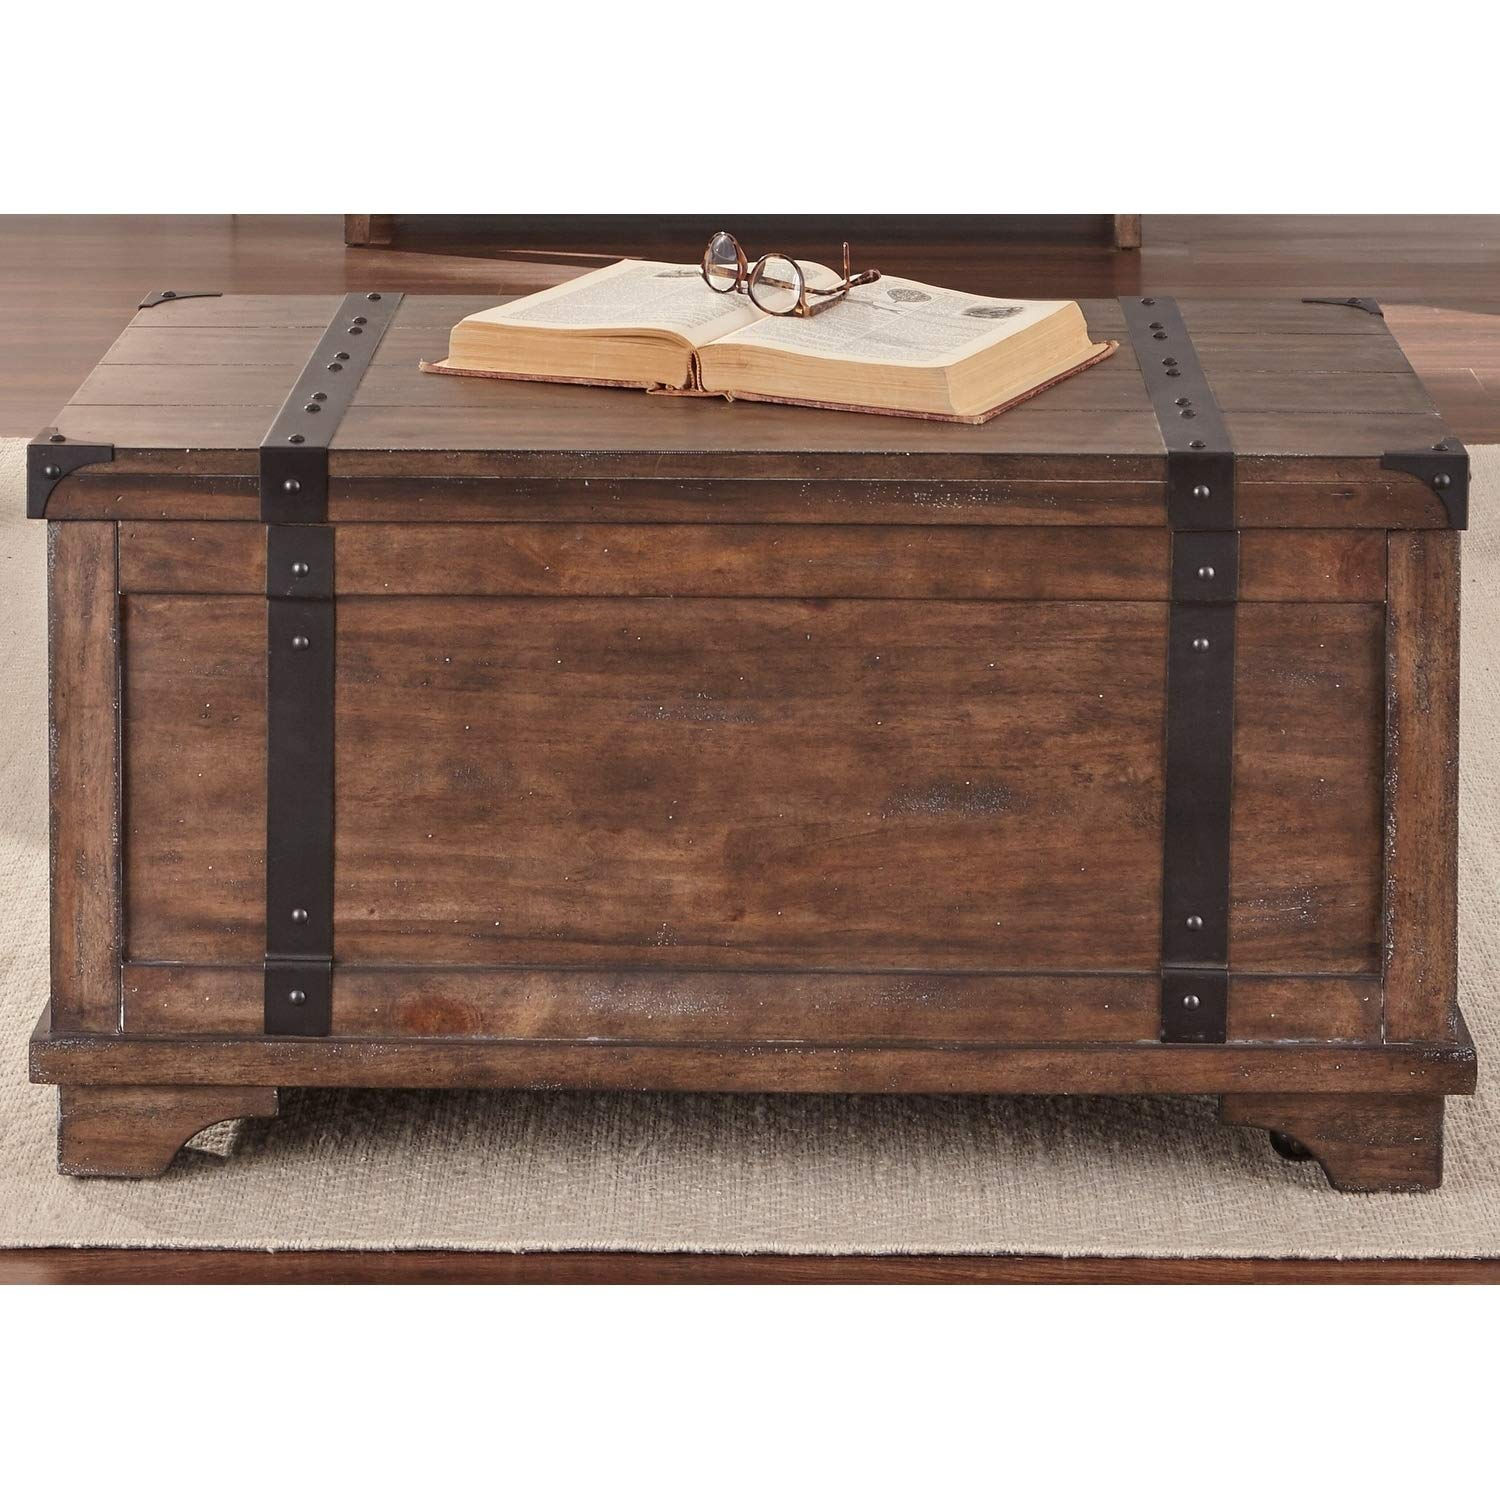 Aspen Skies Weathered Brown and Grey Hang Storage Trunk Rustic Traditional Rectangle Metal Pine Veneer Wood Finish Includes Hardware by Unknown